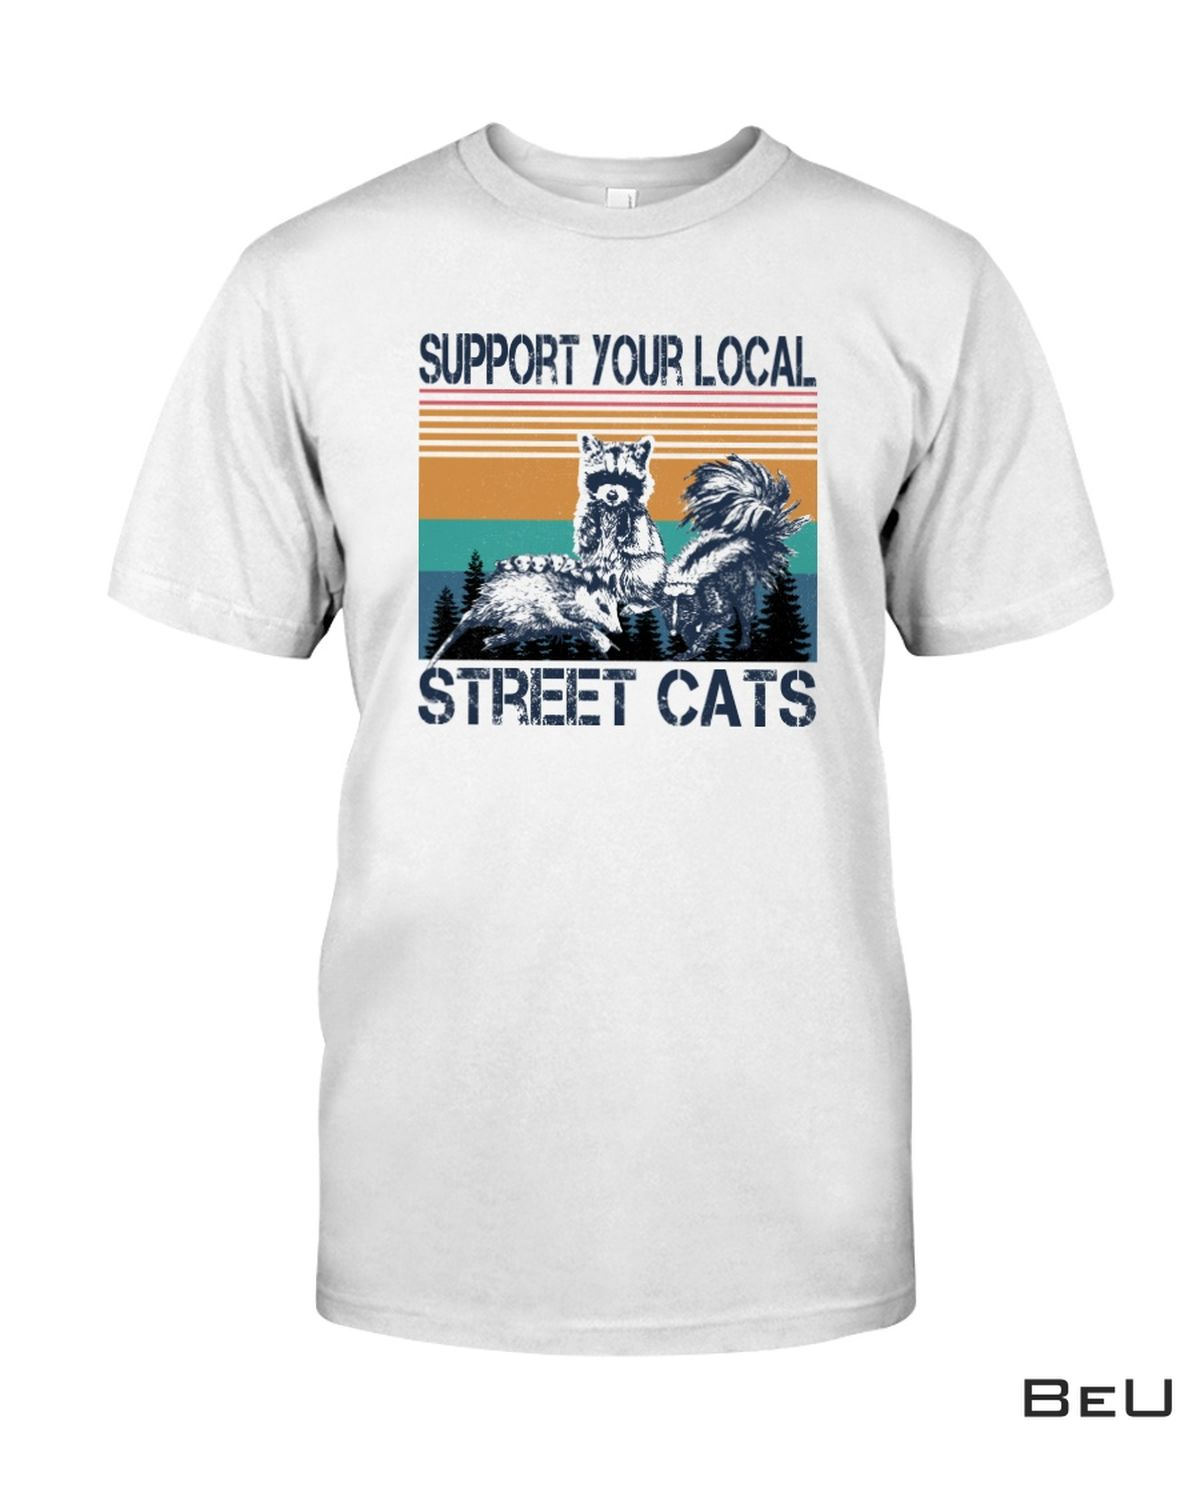 Support Your Local Street Cats Shirt, hoodie, tank top